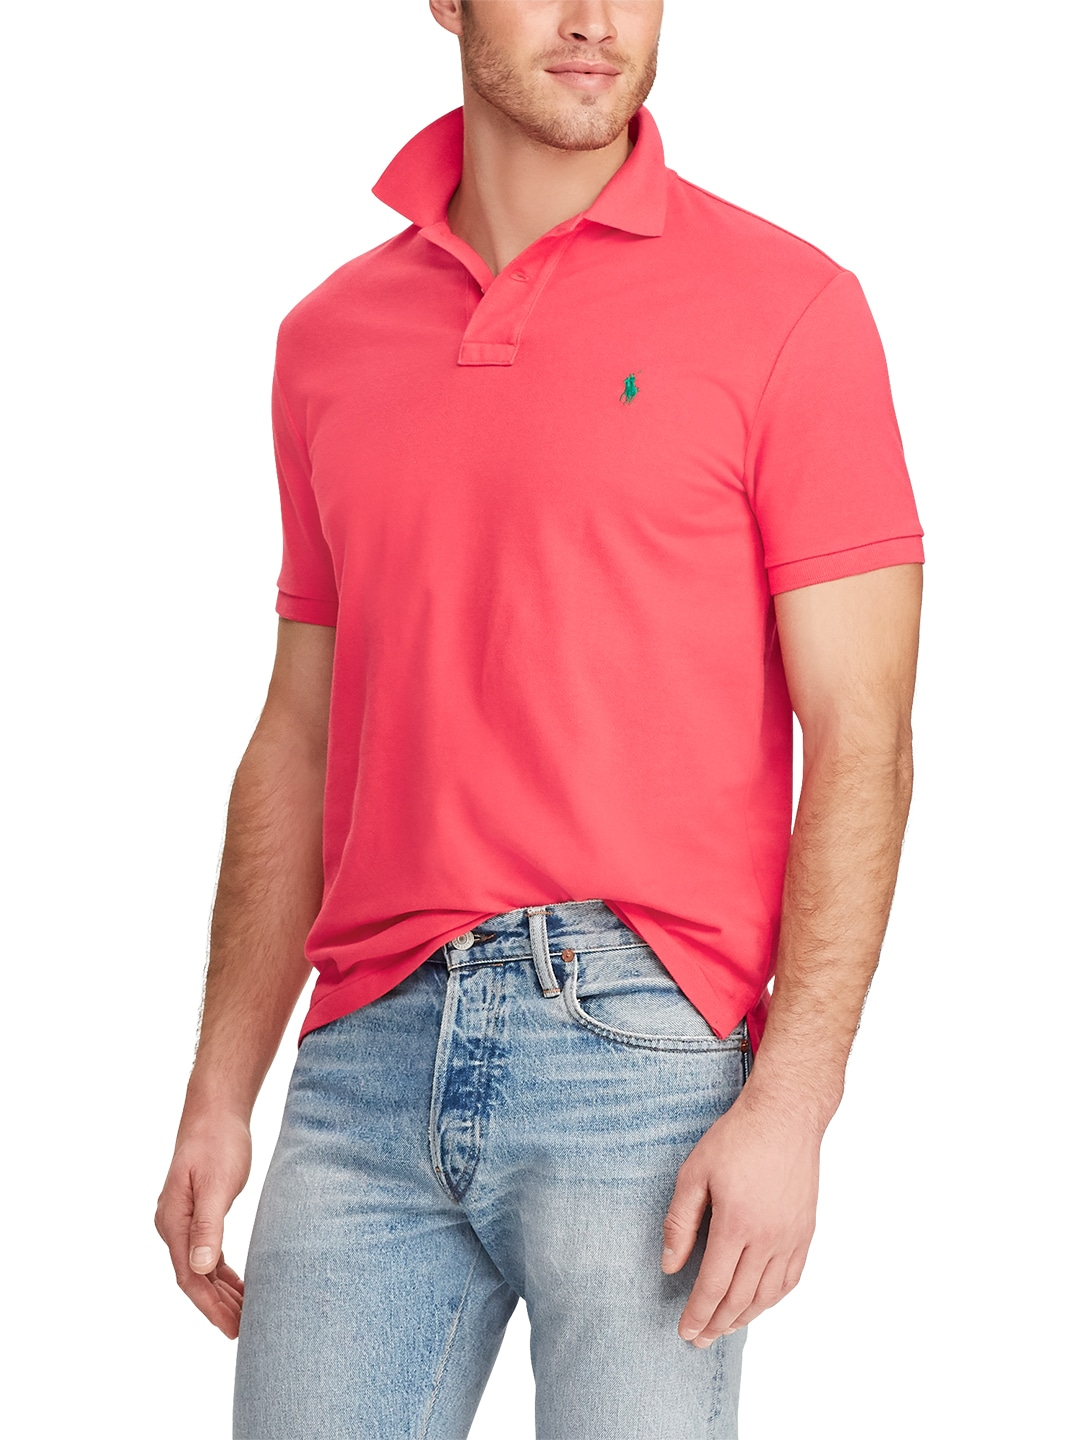 d0f83c0f2add Polo Ralph Lauren - Buy Polo Ralph Lauren Products Online